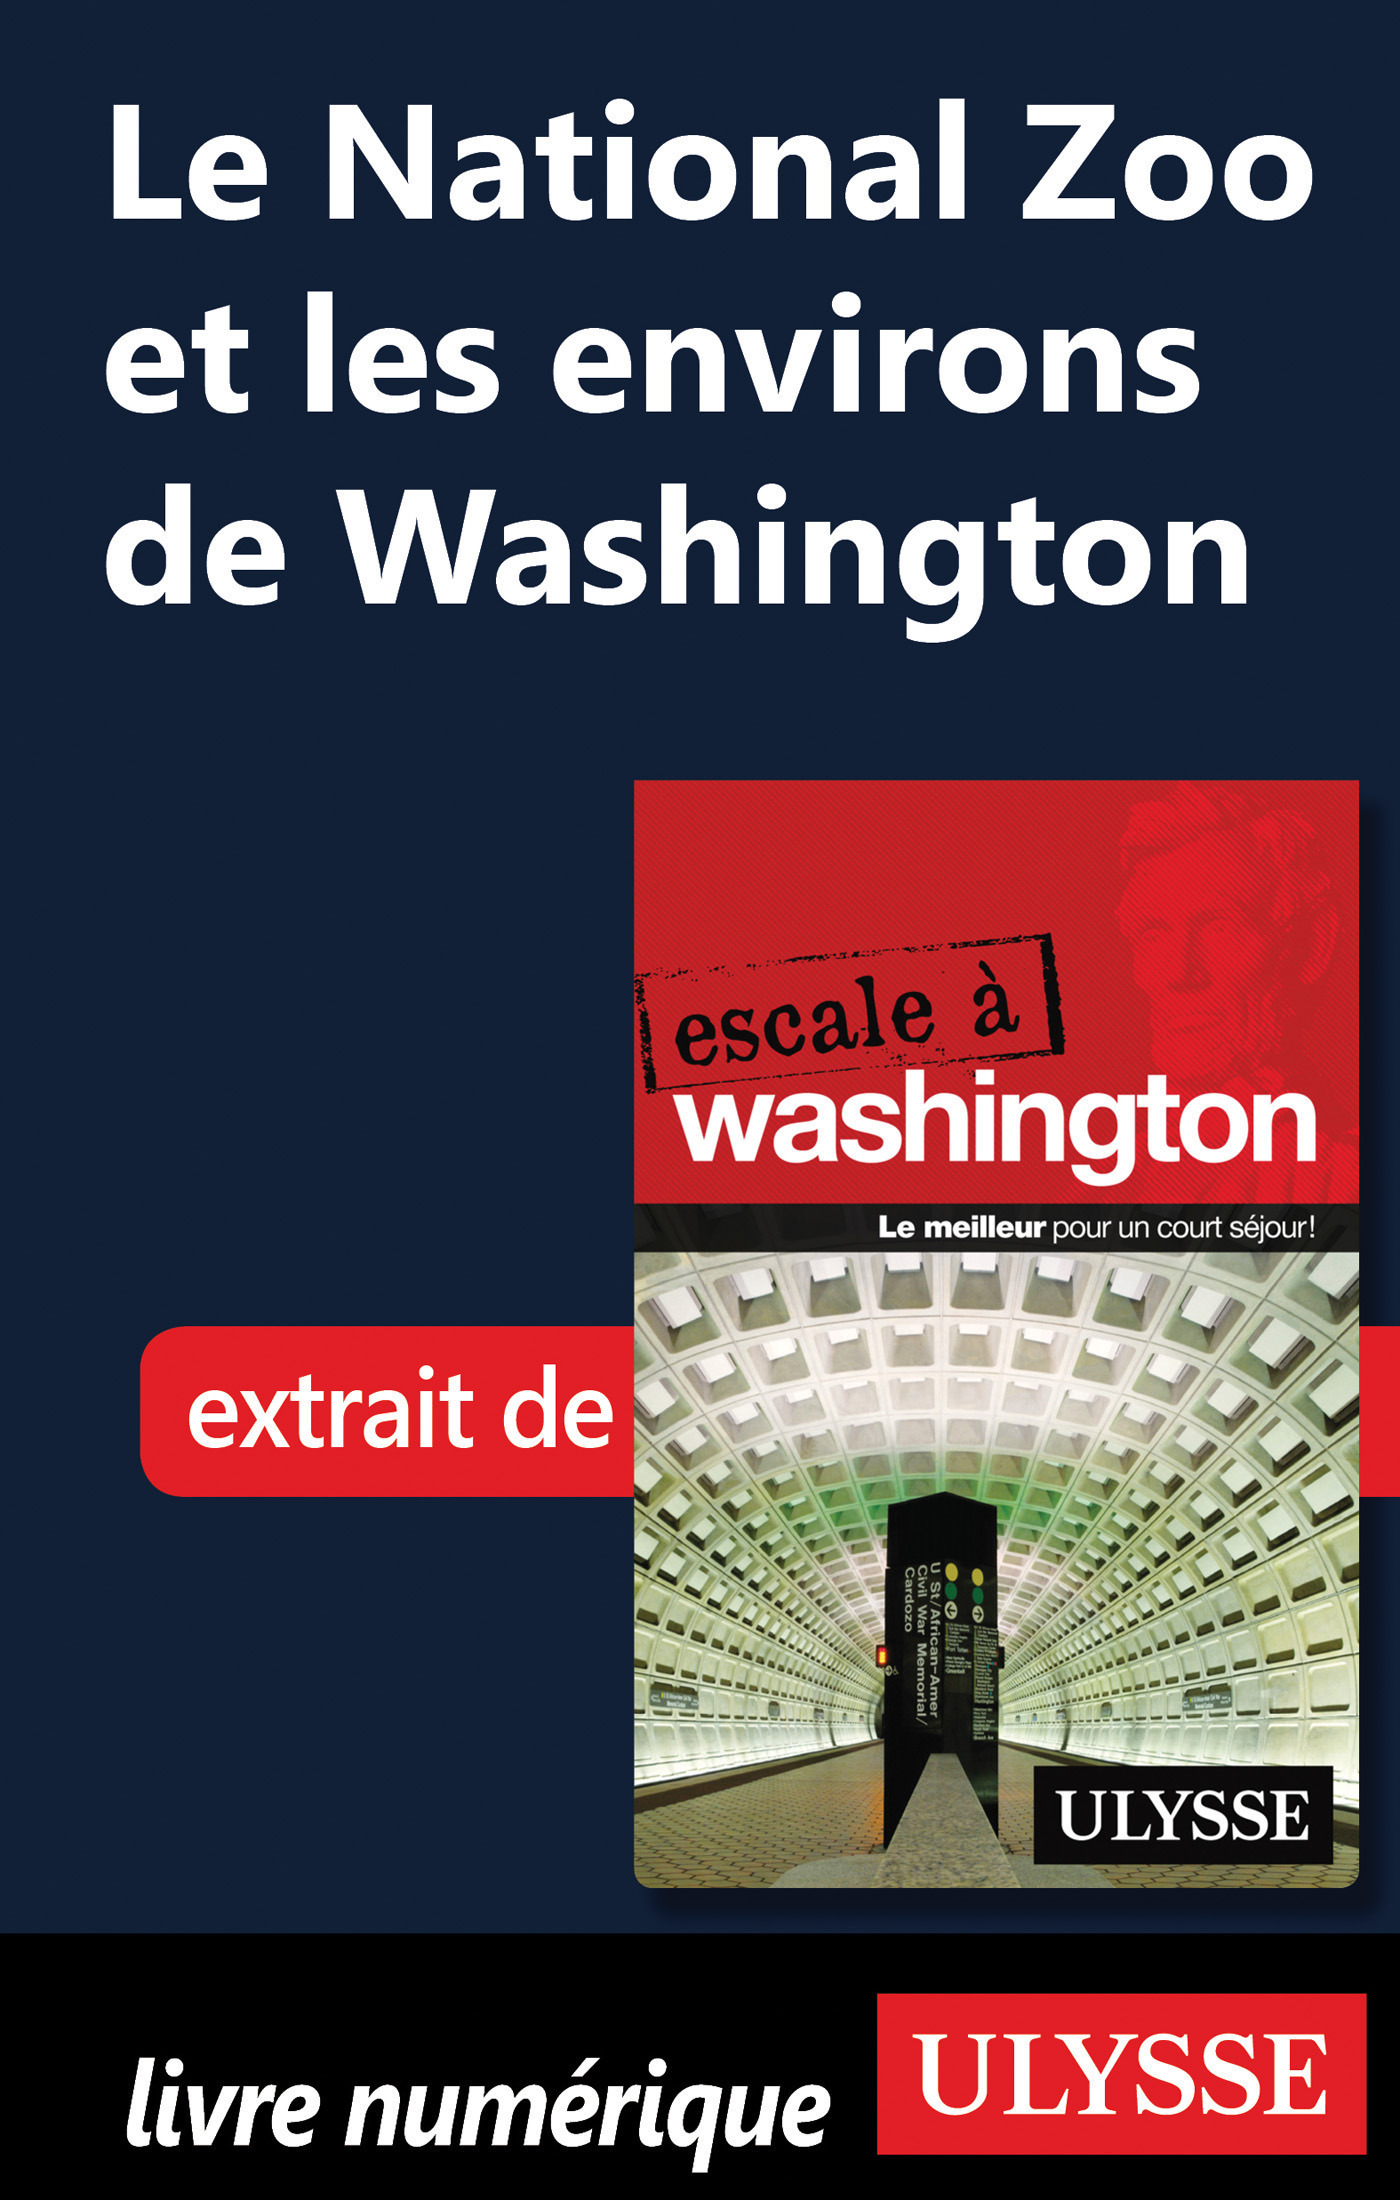 Le National Zoo et les environs de Washington (ebook)